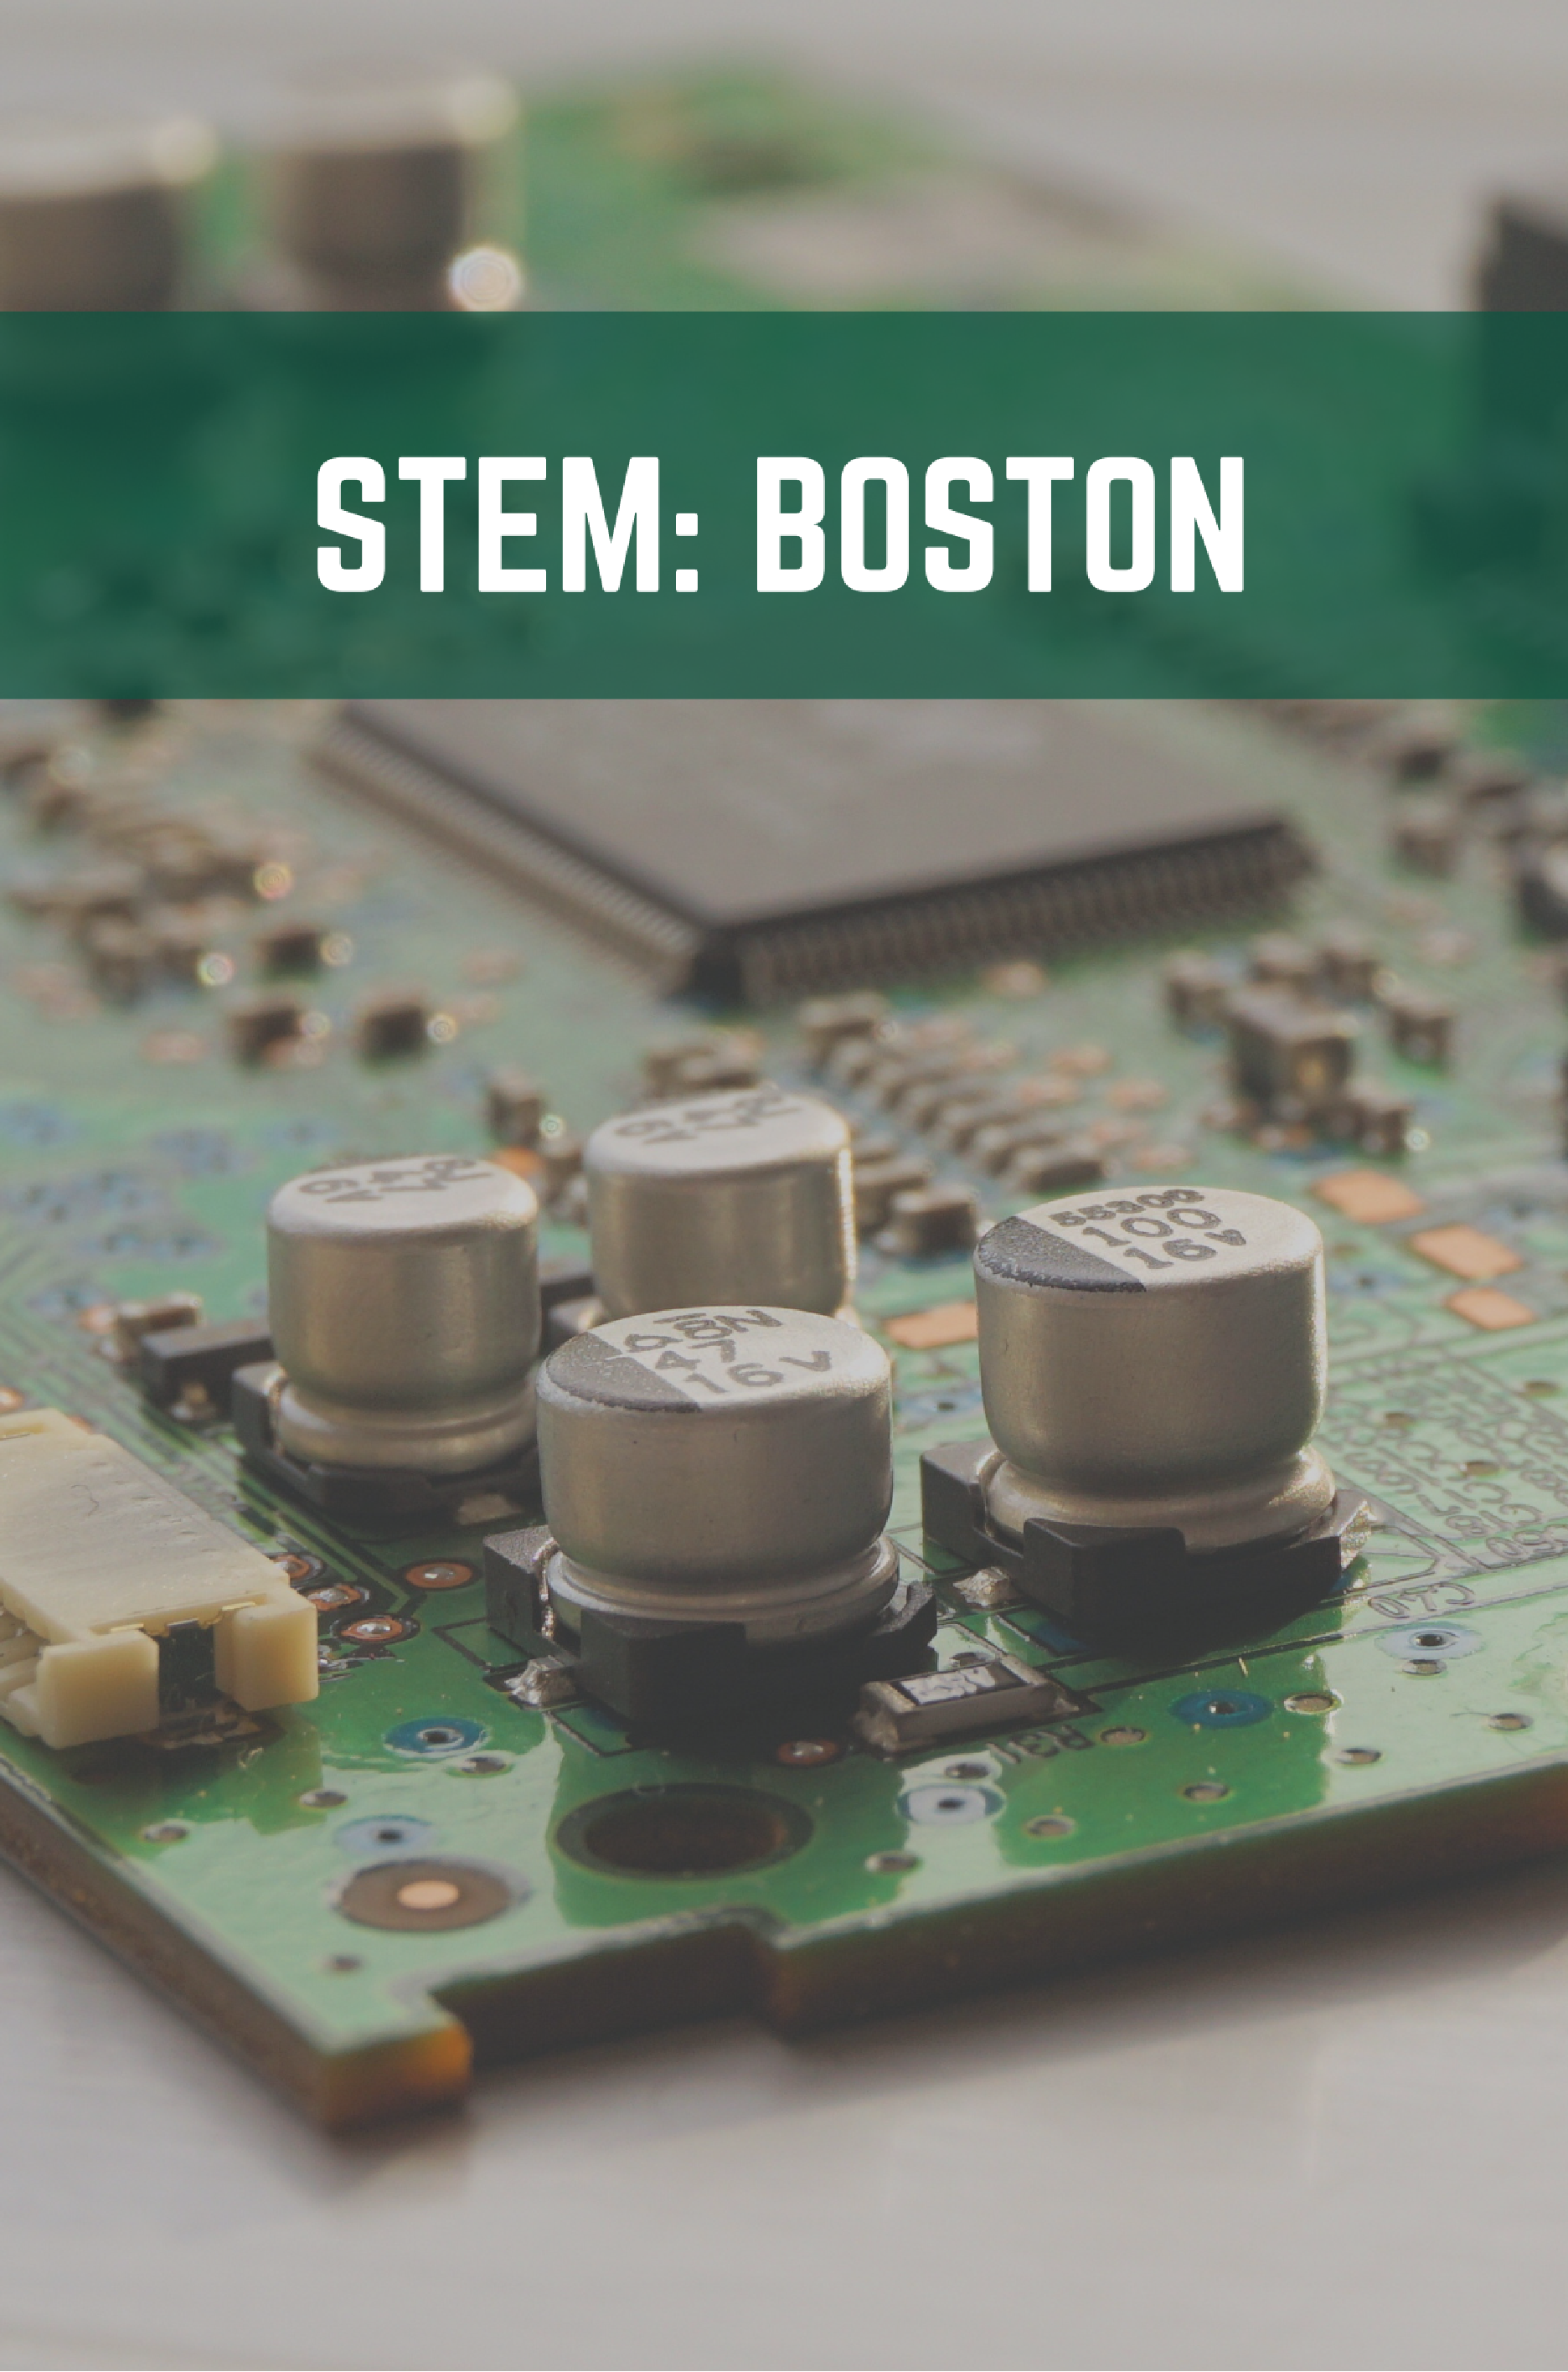 STEM: Boston